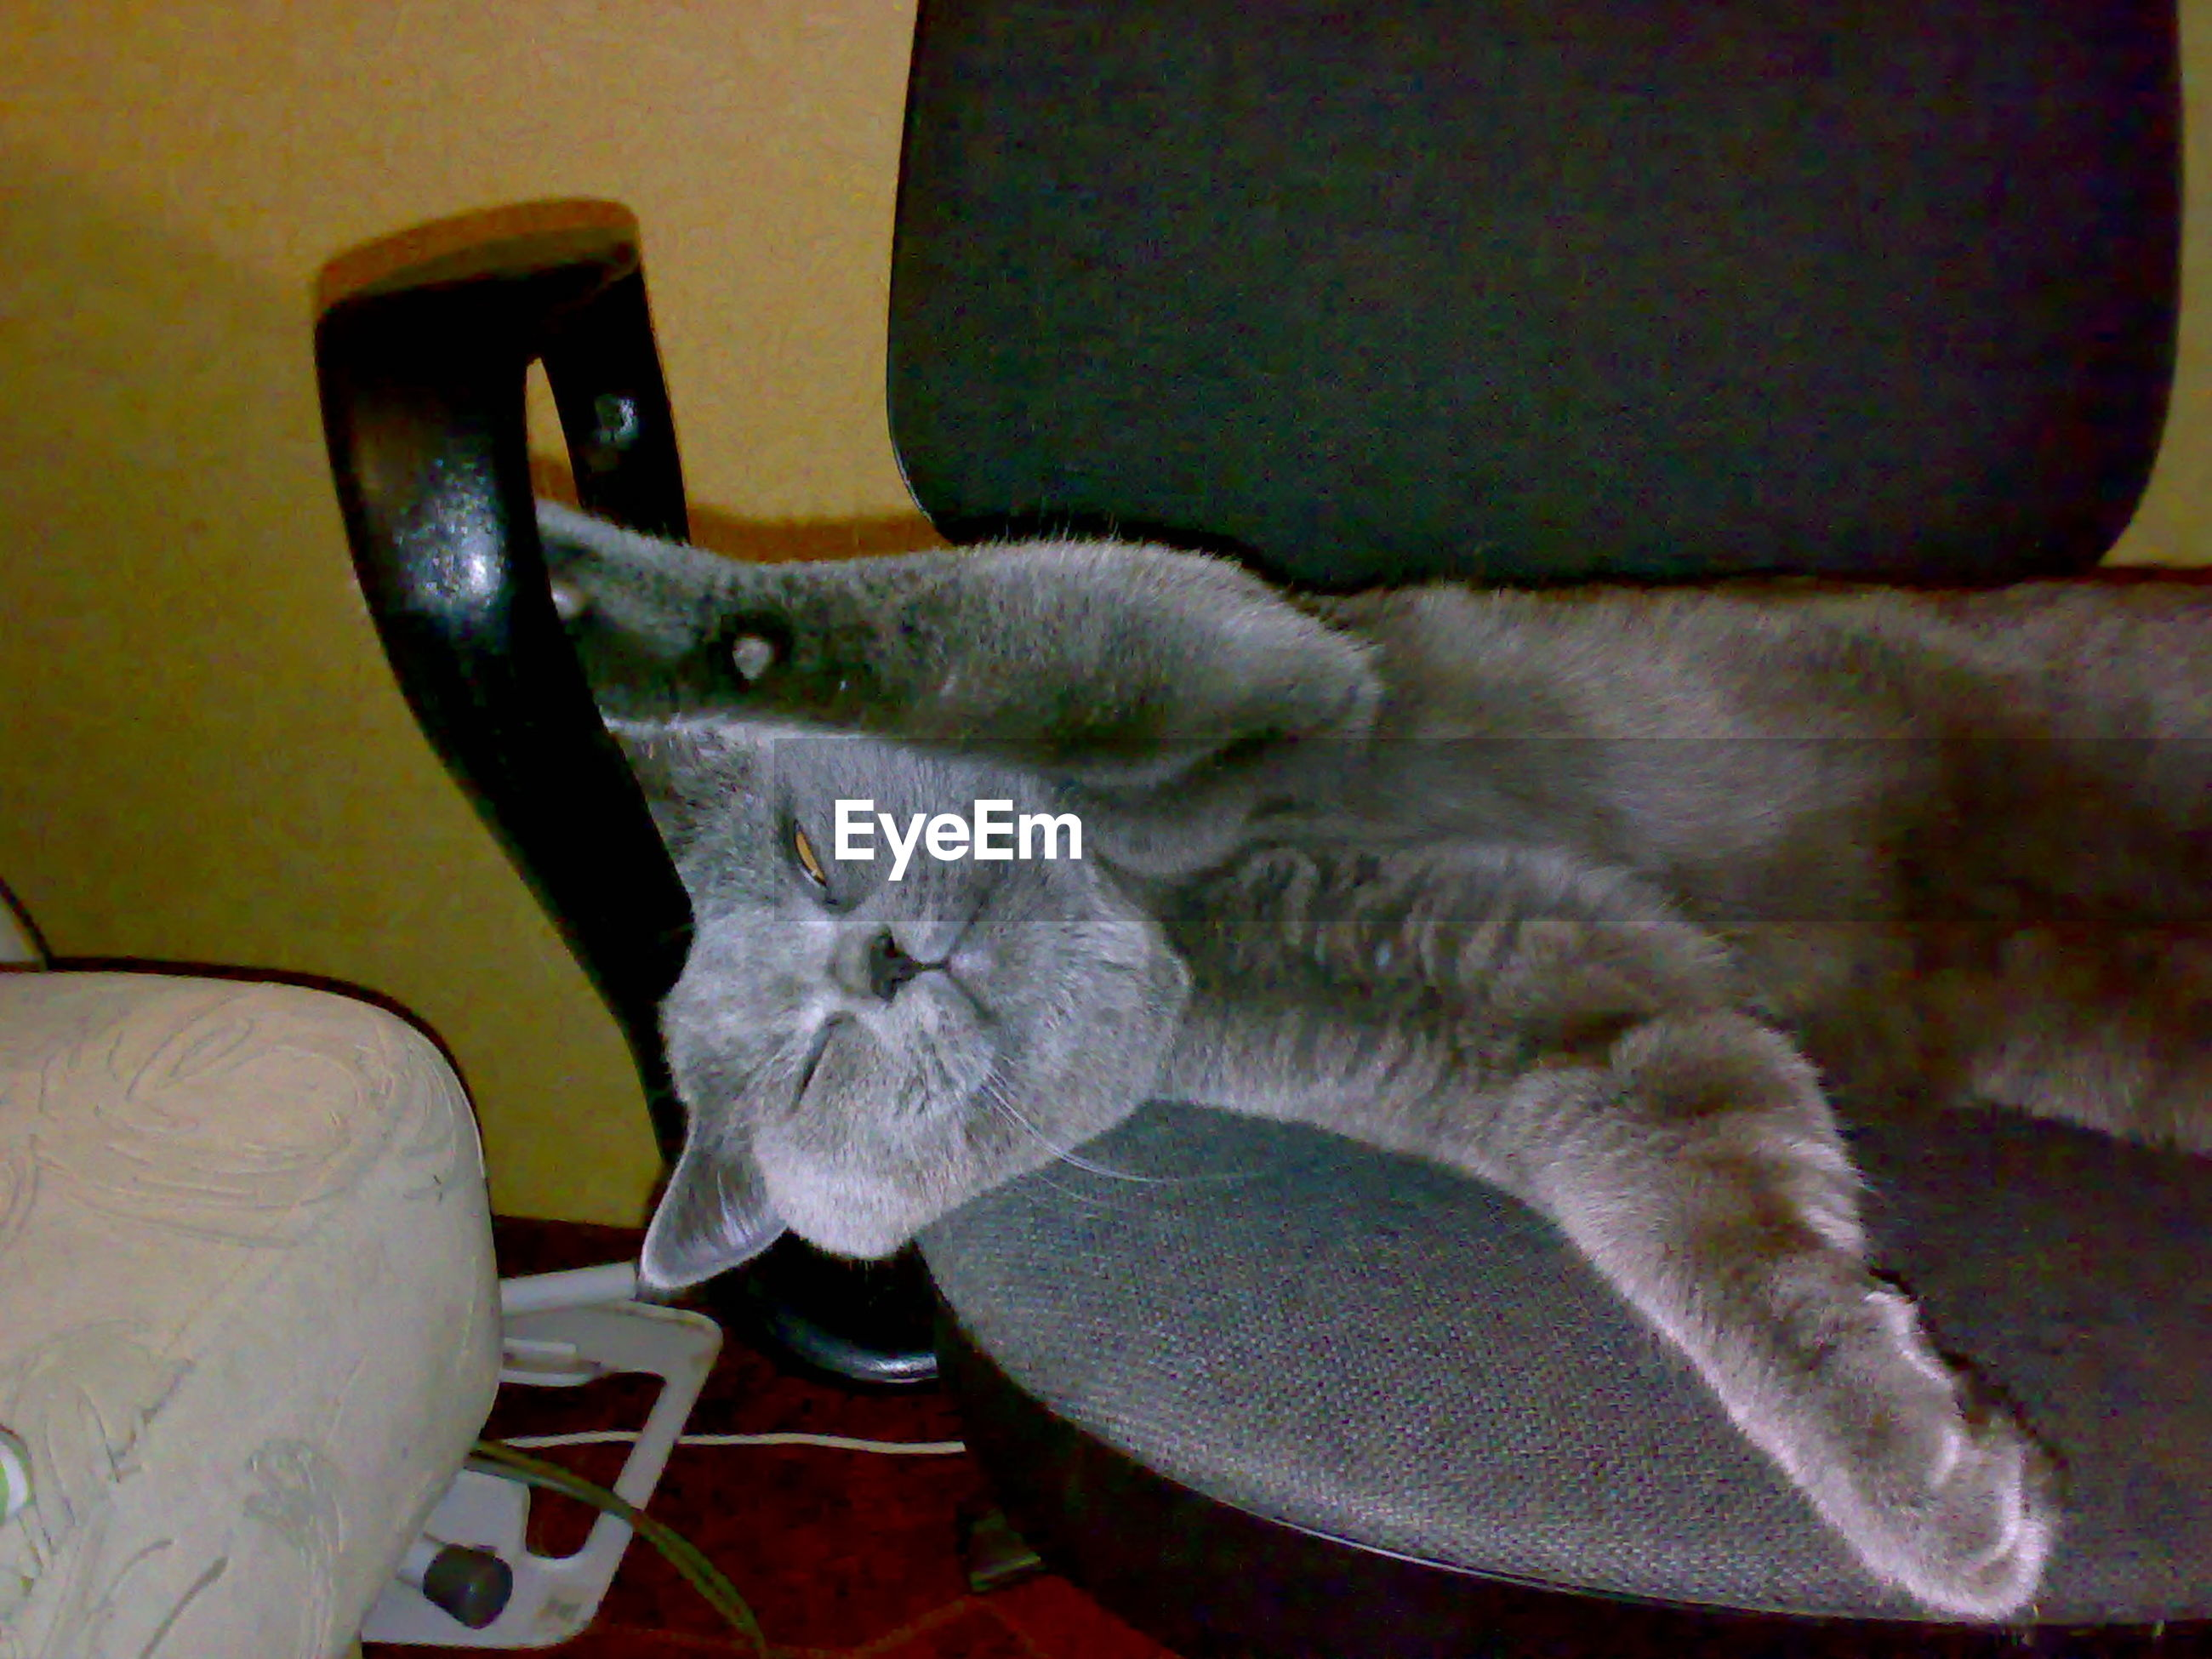 Cat on office chair